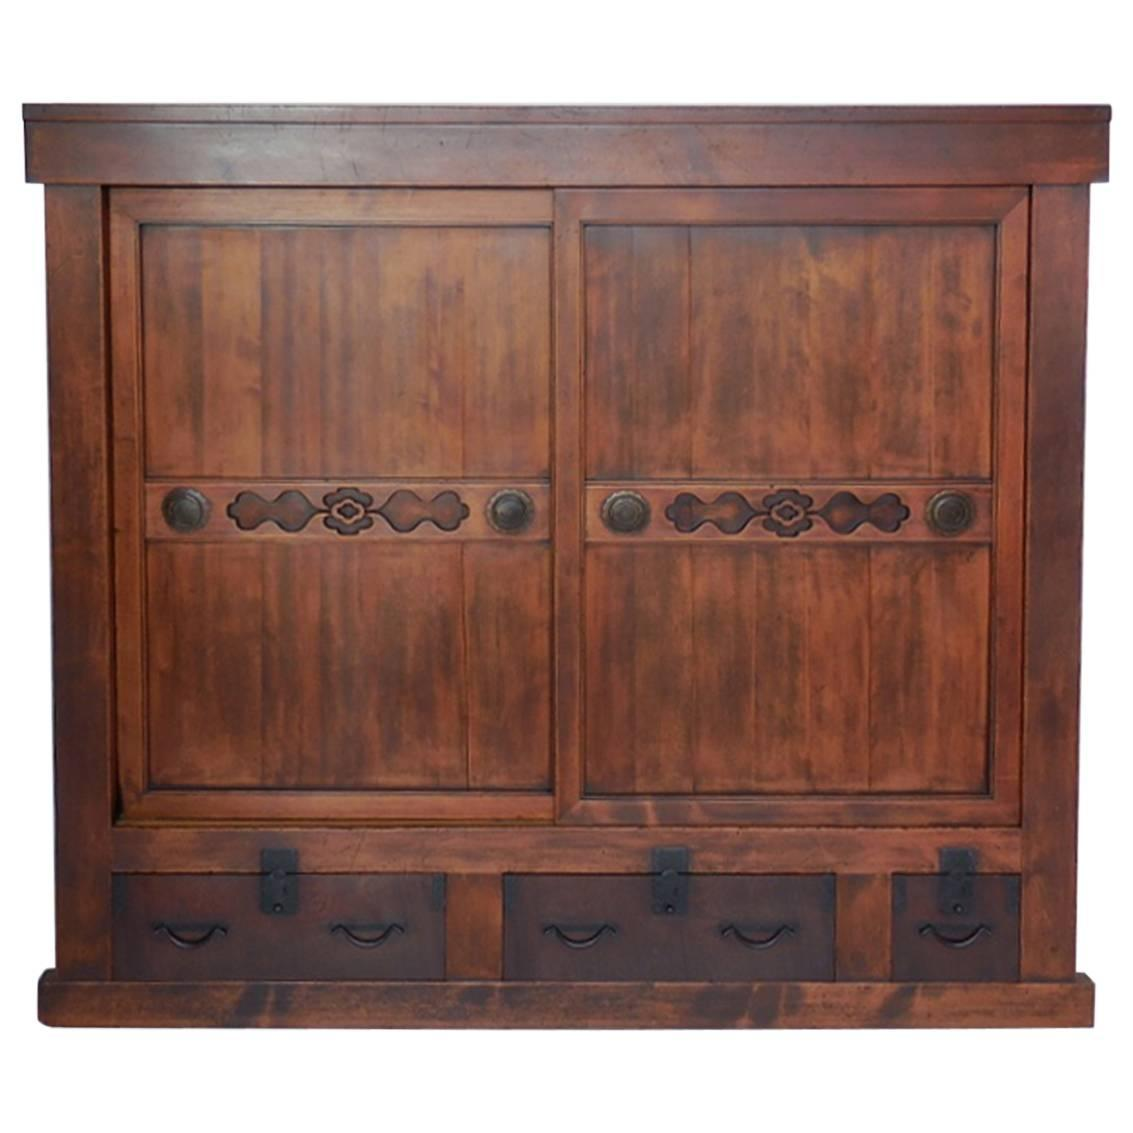 Large 19th Century Japanese Tansu Storage Chest With Sliding Doors For Sale At 1stdibs